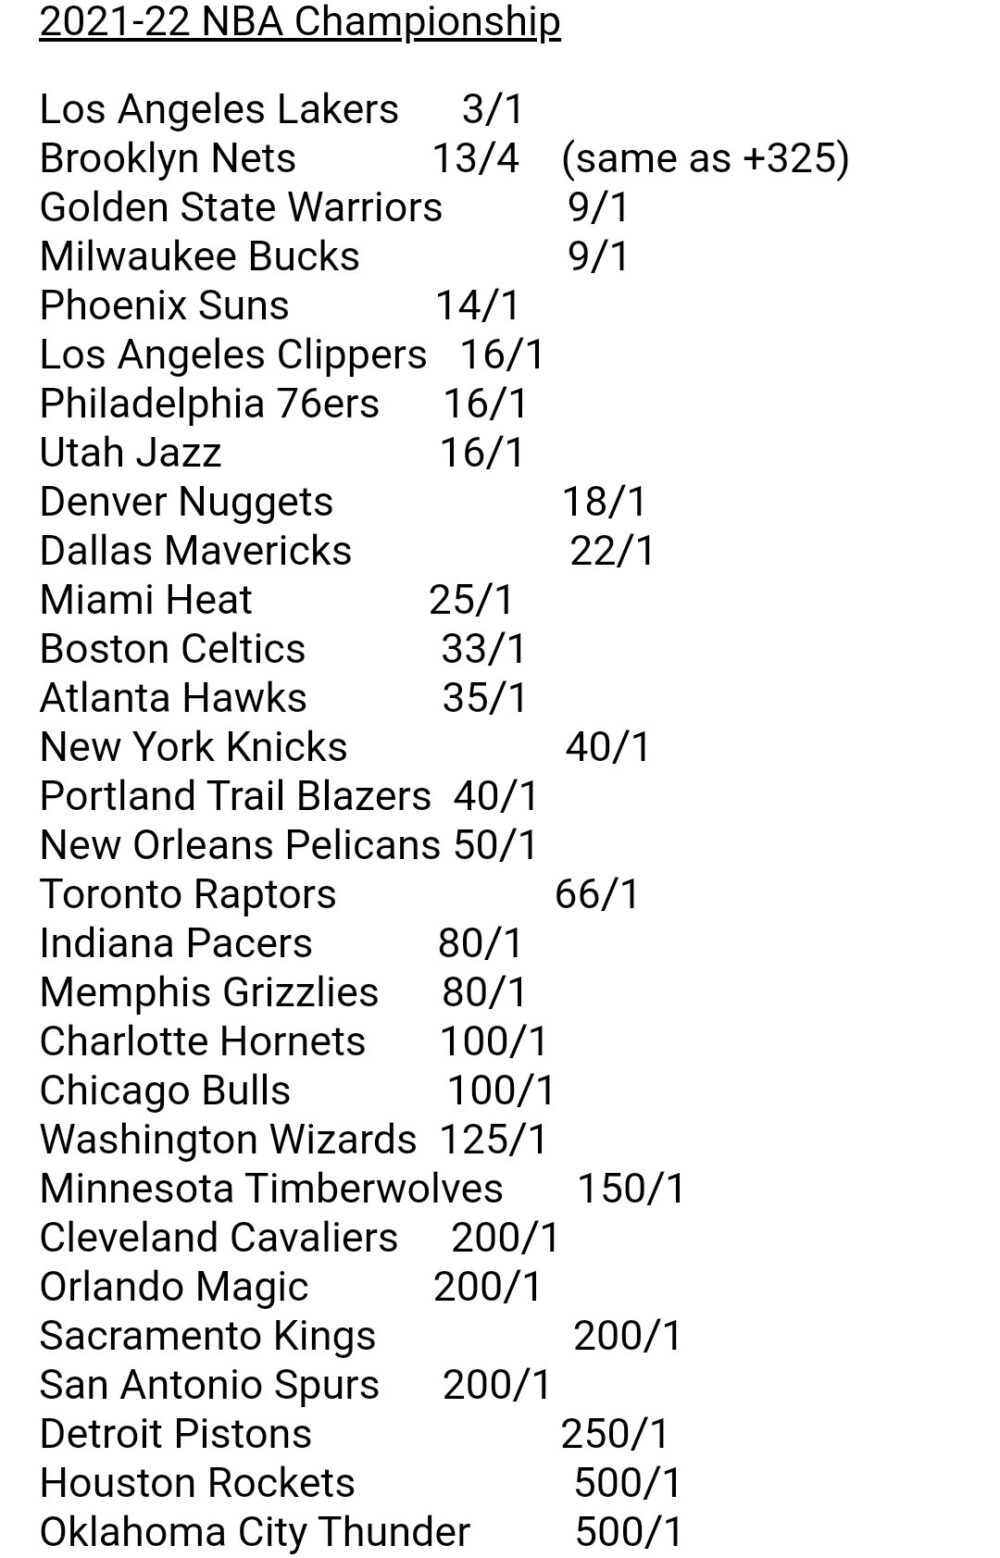 Lakers' title odds